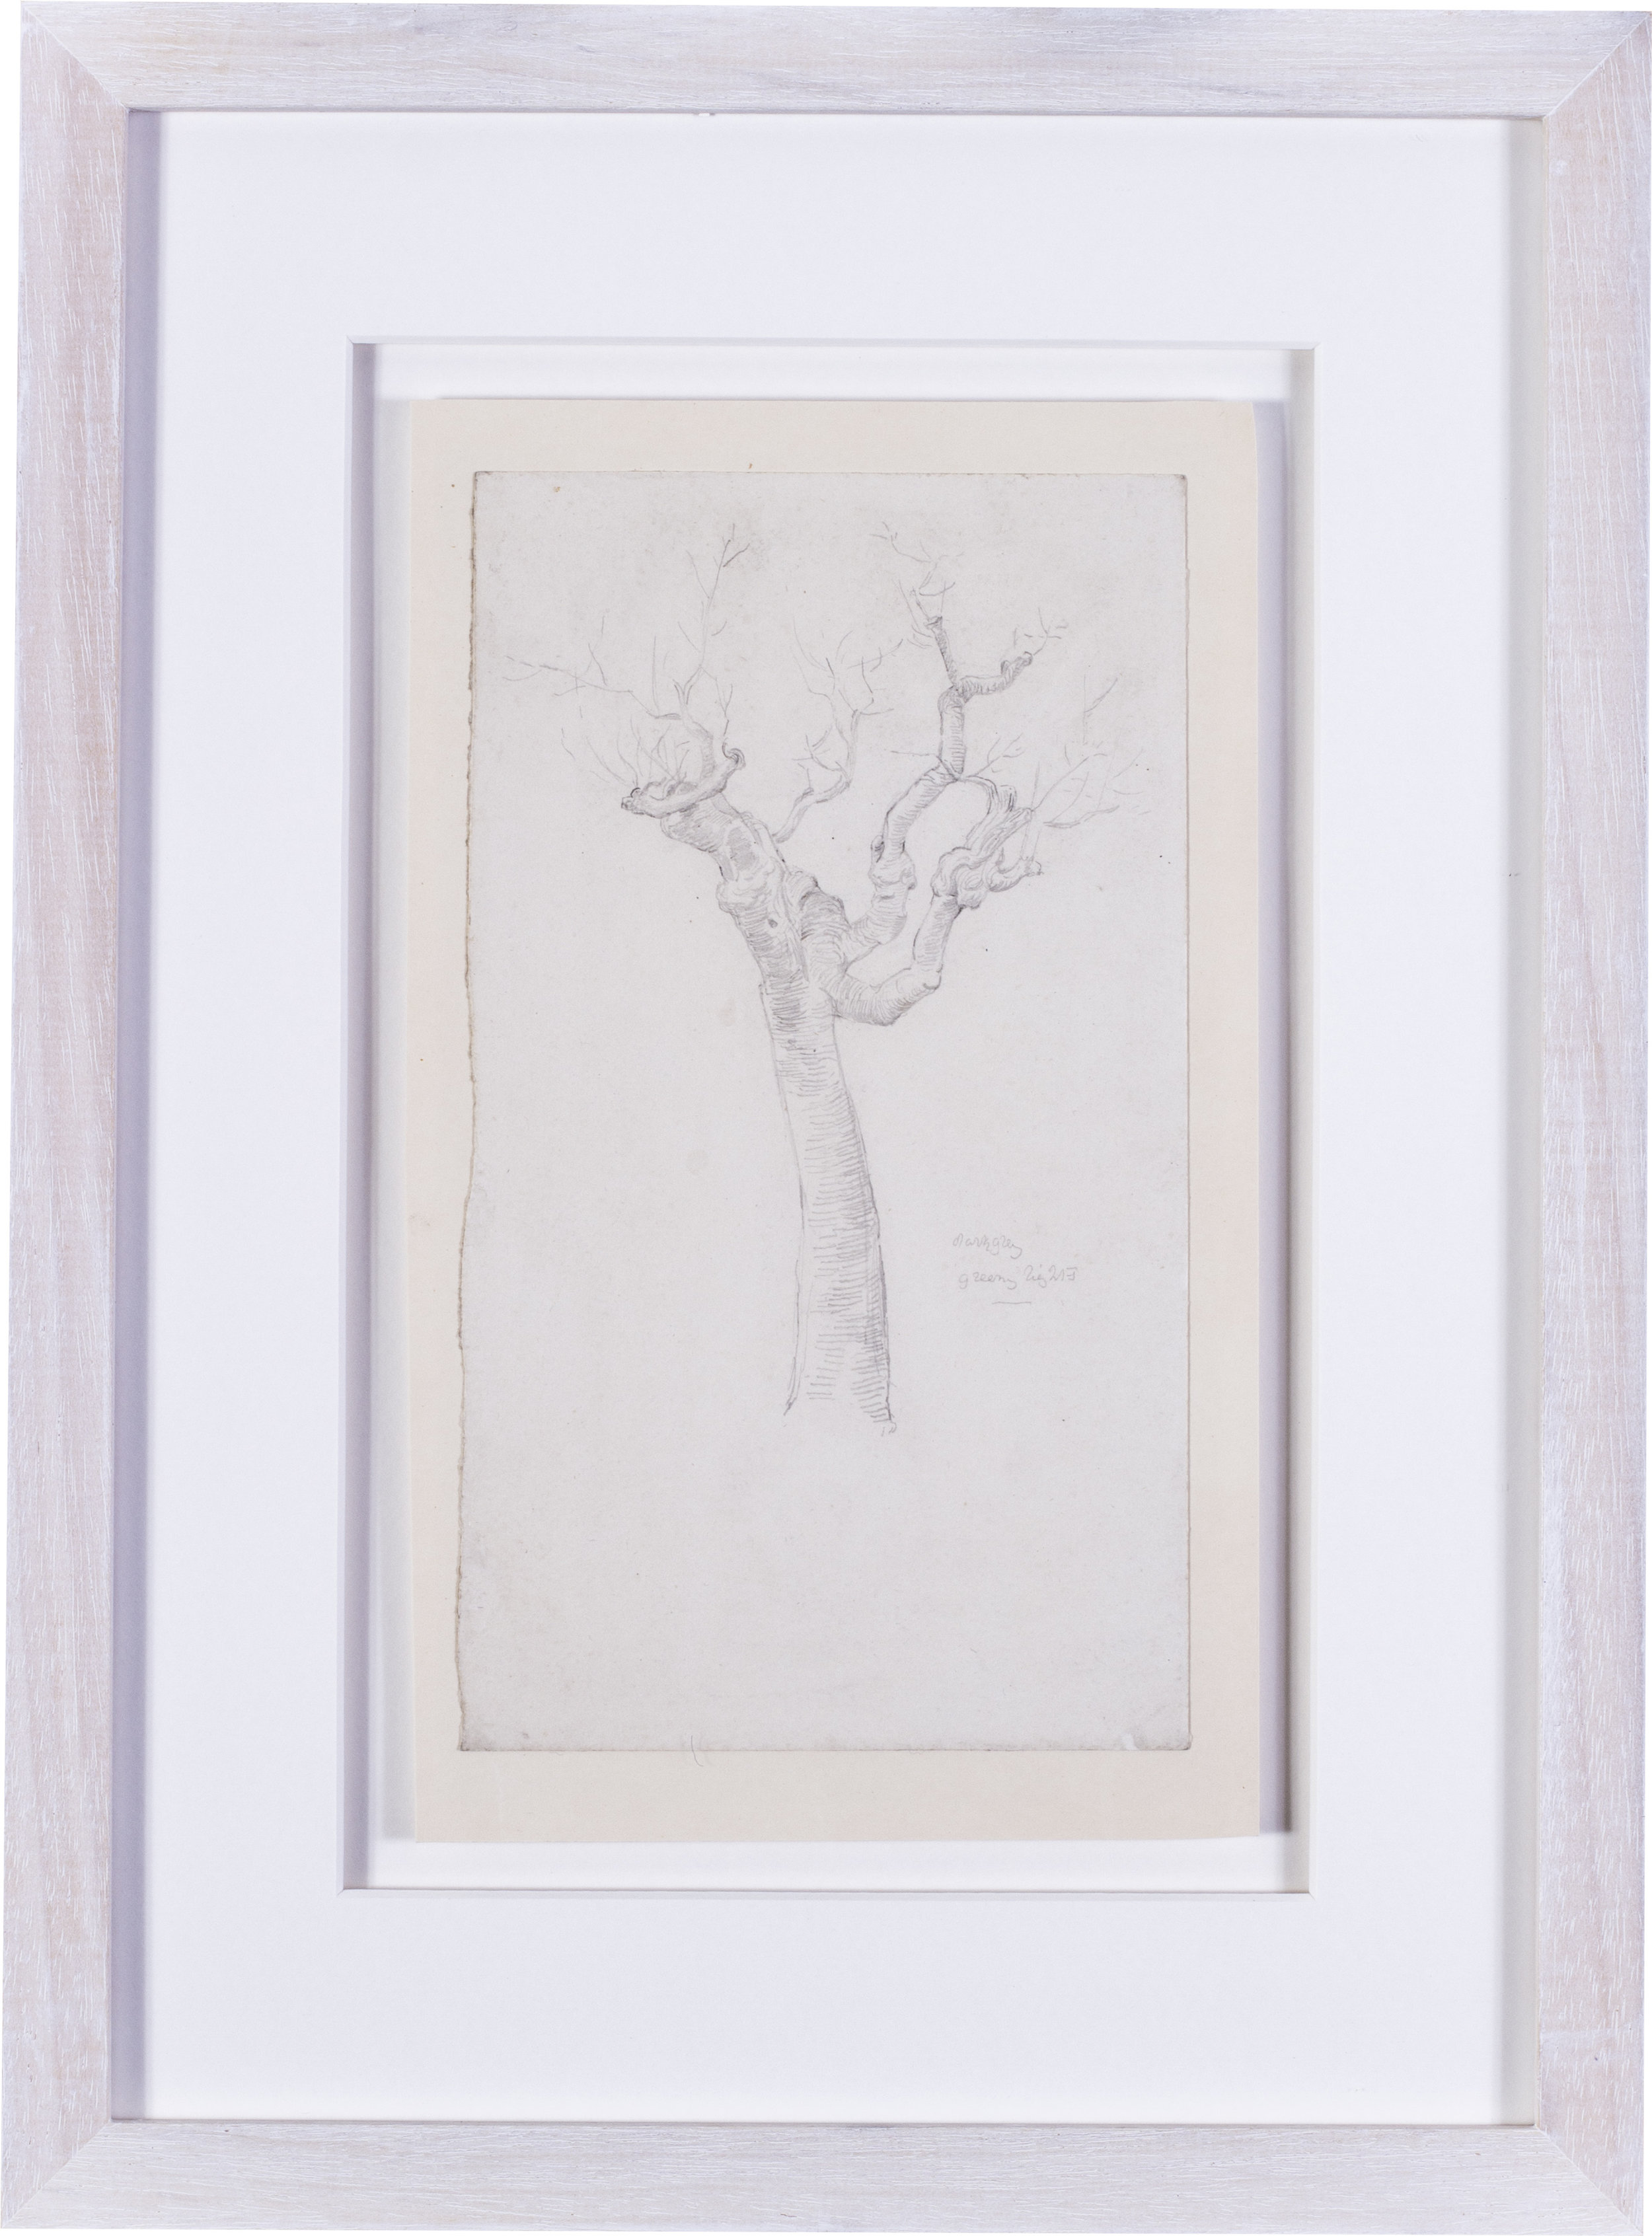 A twisted tree study    pencil on paper  9.3/4 x 5.1/2 in. (24.8 x 14 cm.)  inscribed 'dark grey / greeny lights' (lower right)  Provenance: The Clayton-Stamm Collection.  Dominic Winter, Cirencester, 8thNovember 2018, lot 464  £900